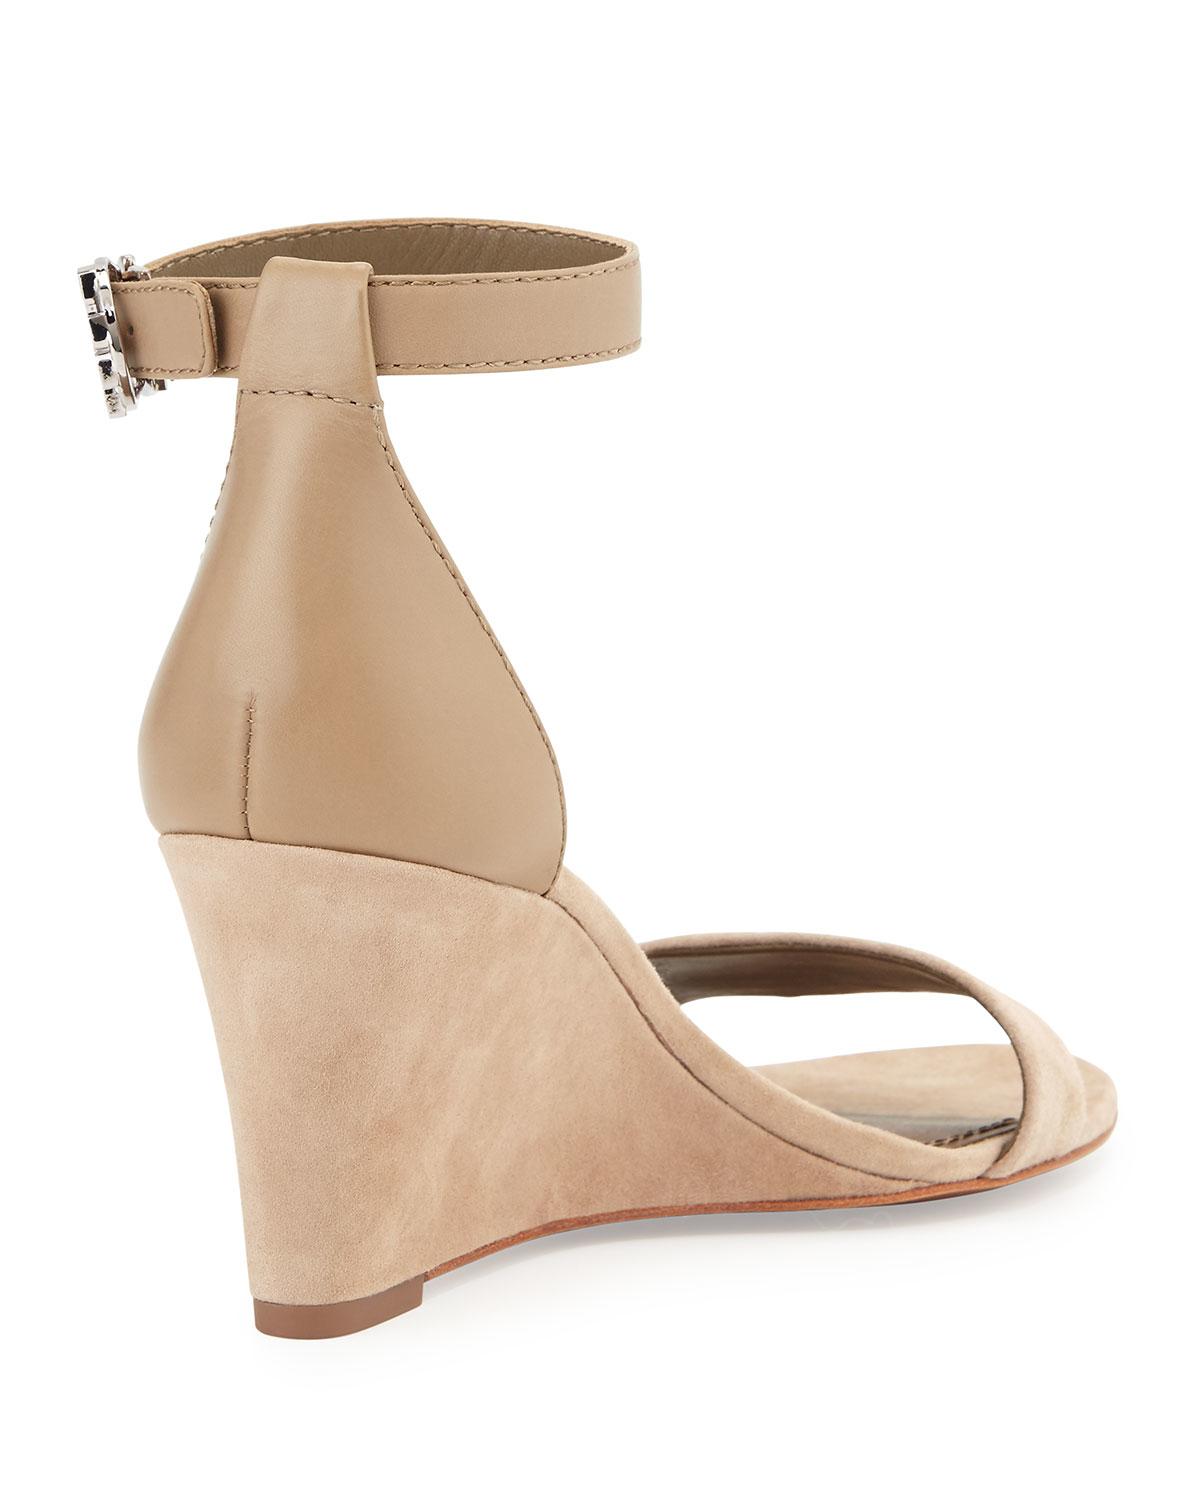 80a17bb7e3e Lyst - Tory Burch Thames Suede Wedges in Brown